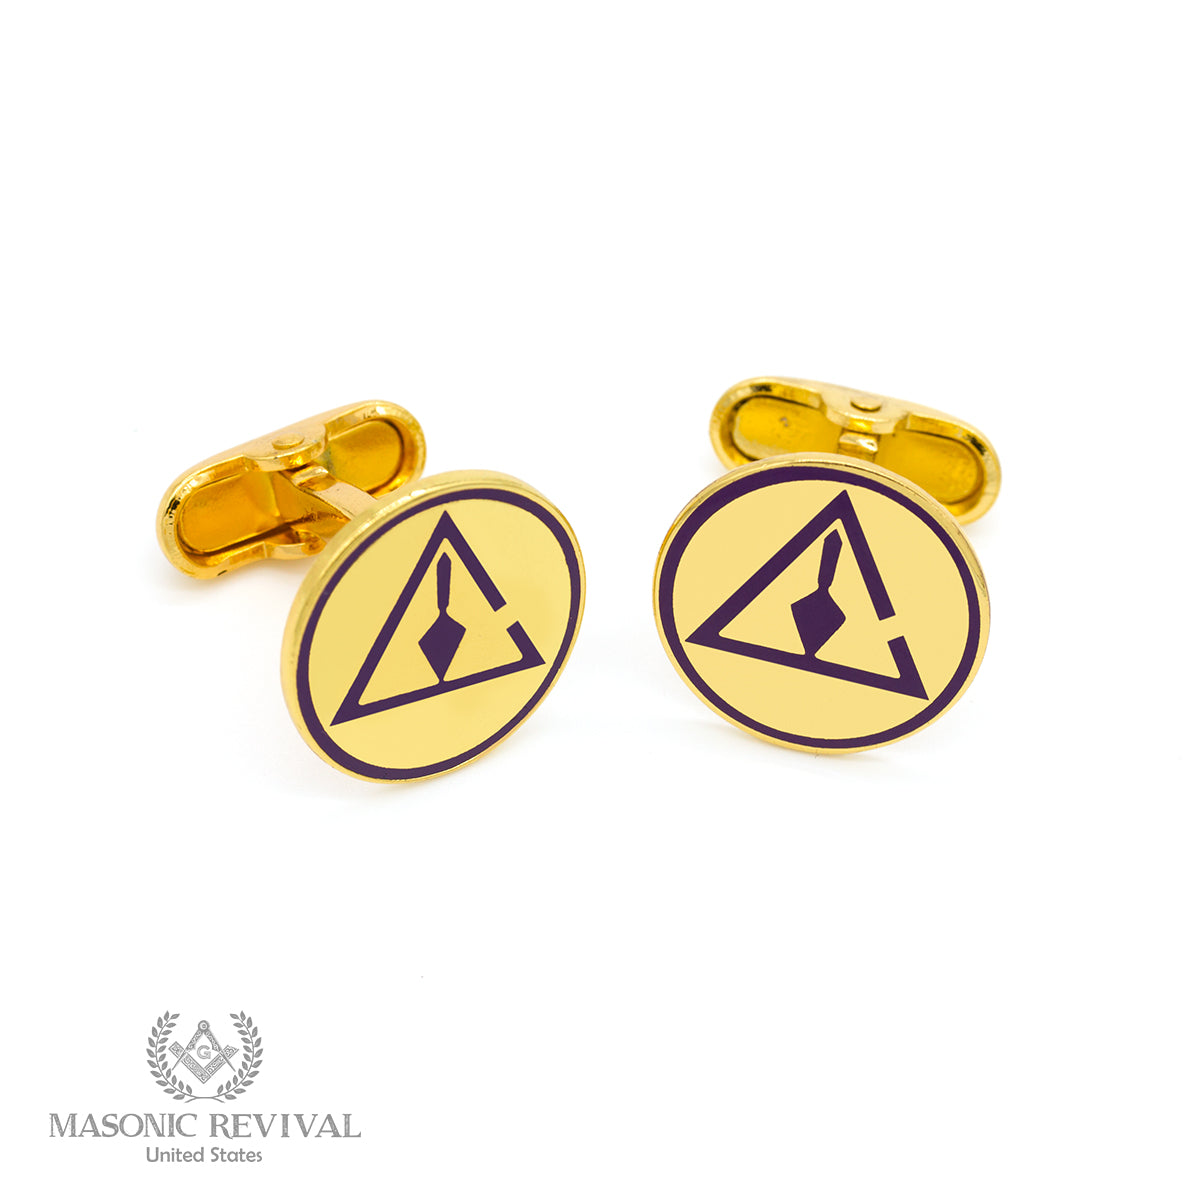 Cryptic York Rite Cufflinks